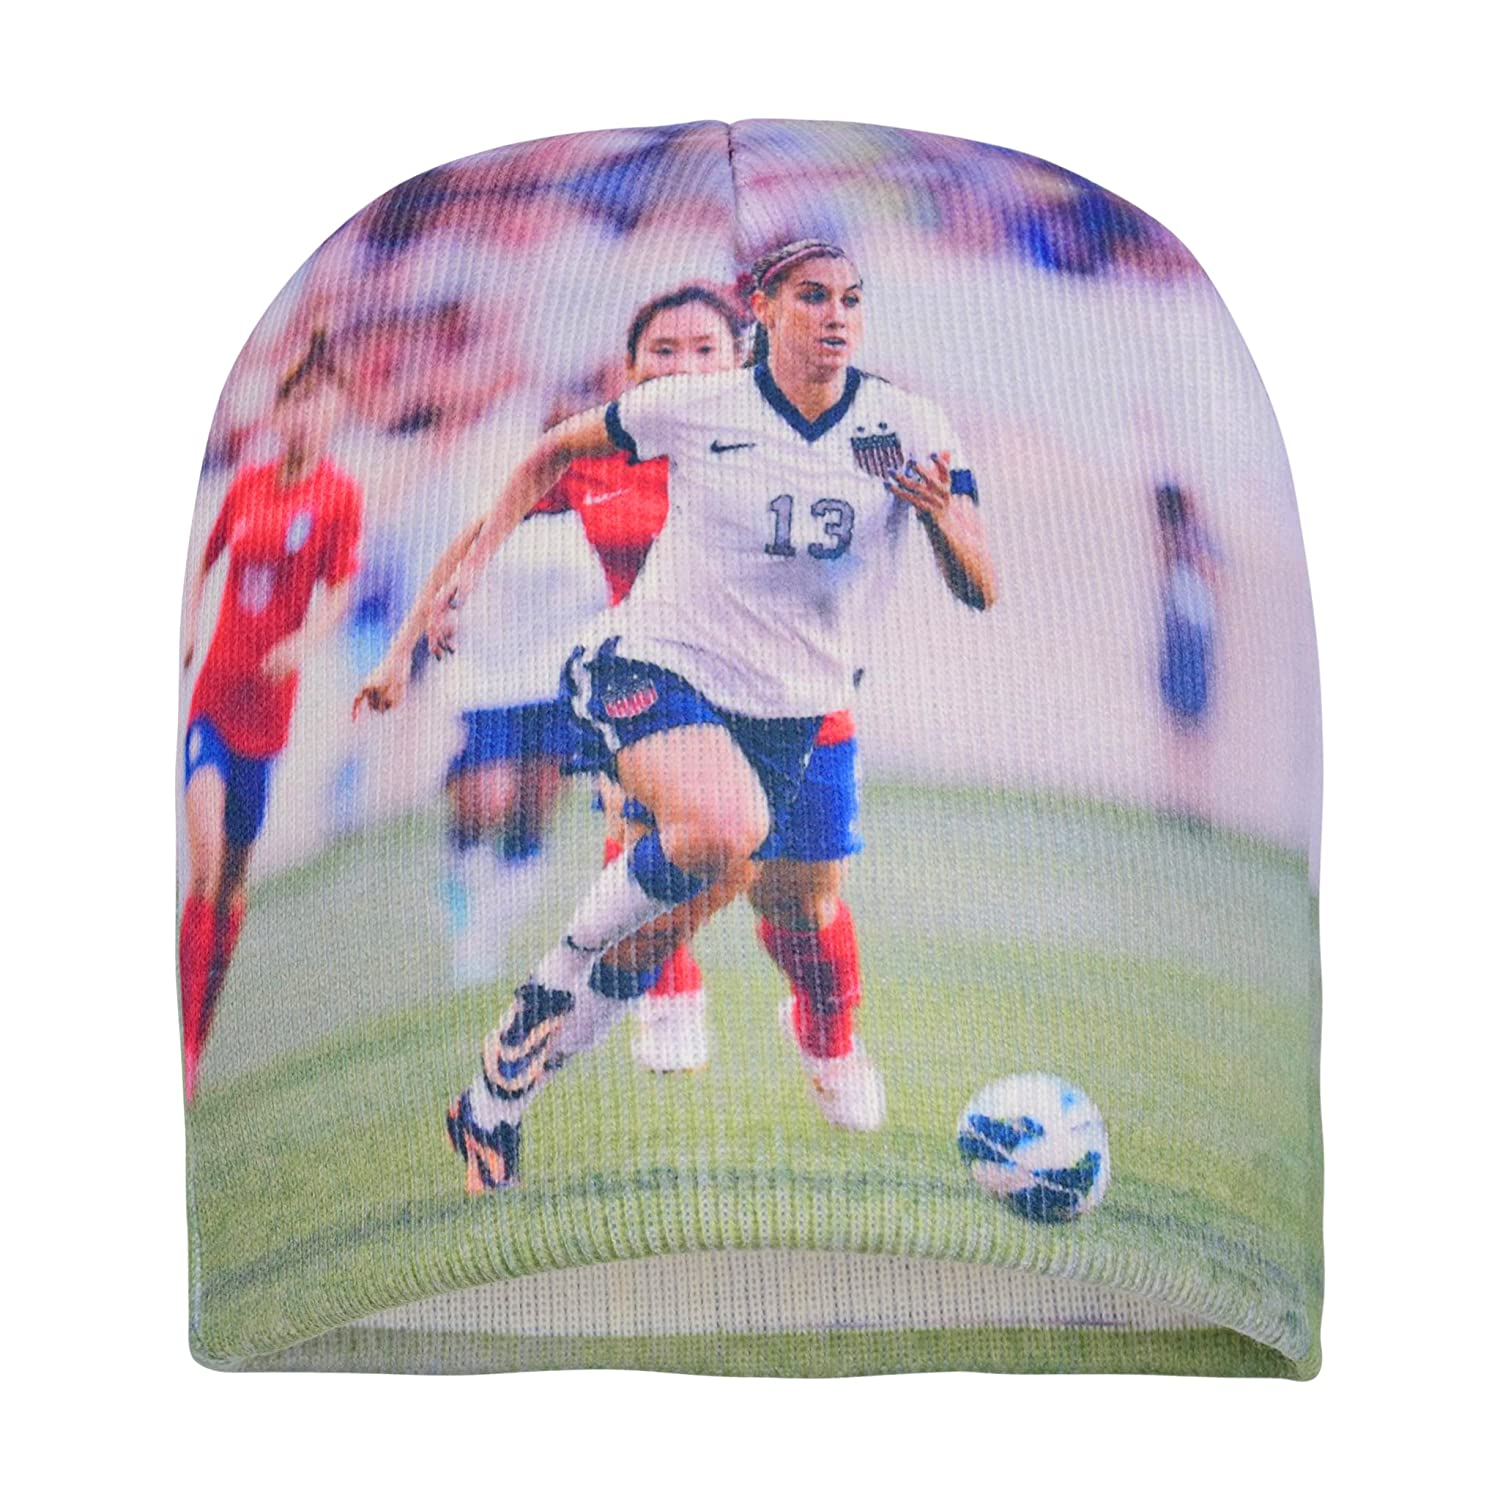 2fbf0b9803a Amazon.com   Forever Fanatics Alex Morgan  13 Soccer Beanie ✓ Digital  Graphic Printing ✓ Pefect Soccer Fan Gift (One Size Fits All